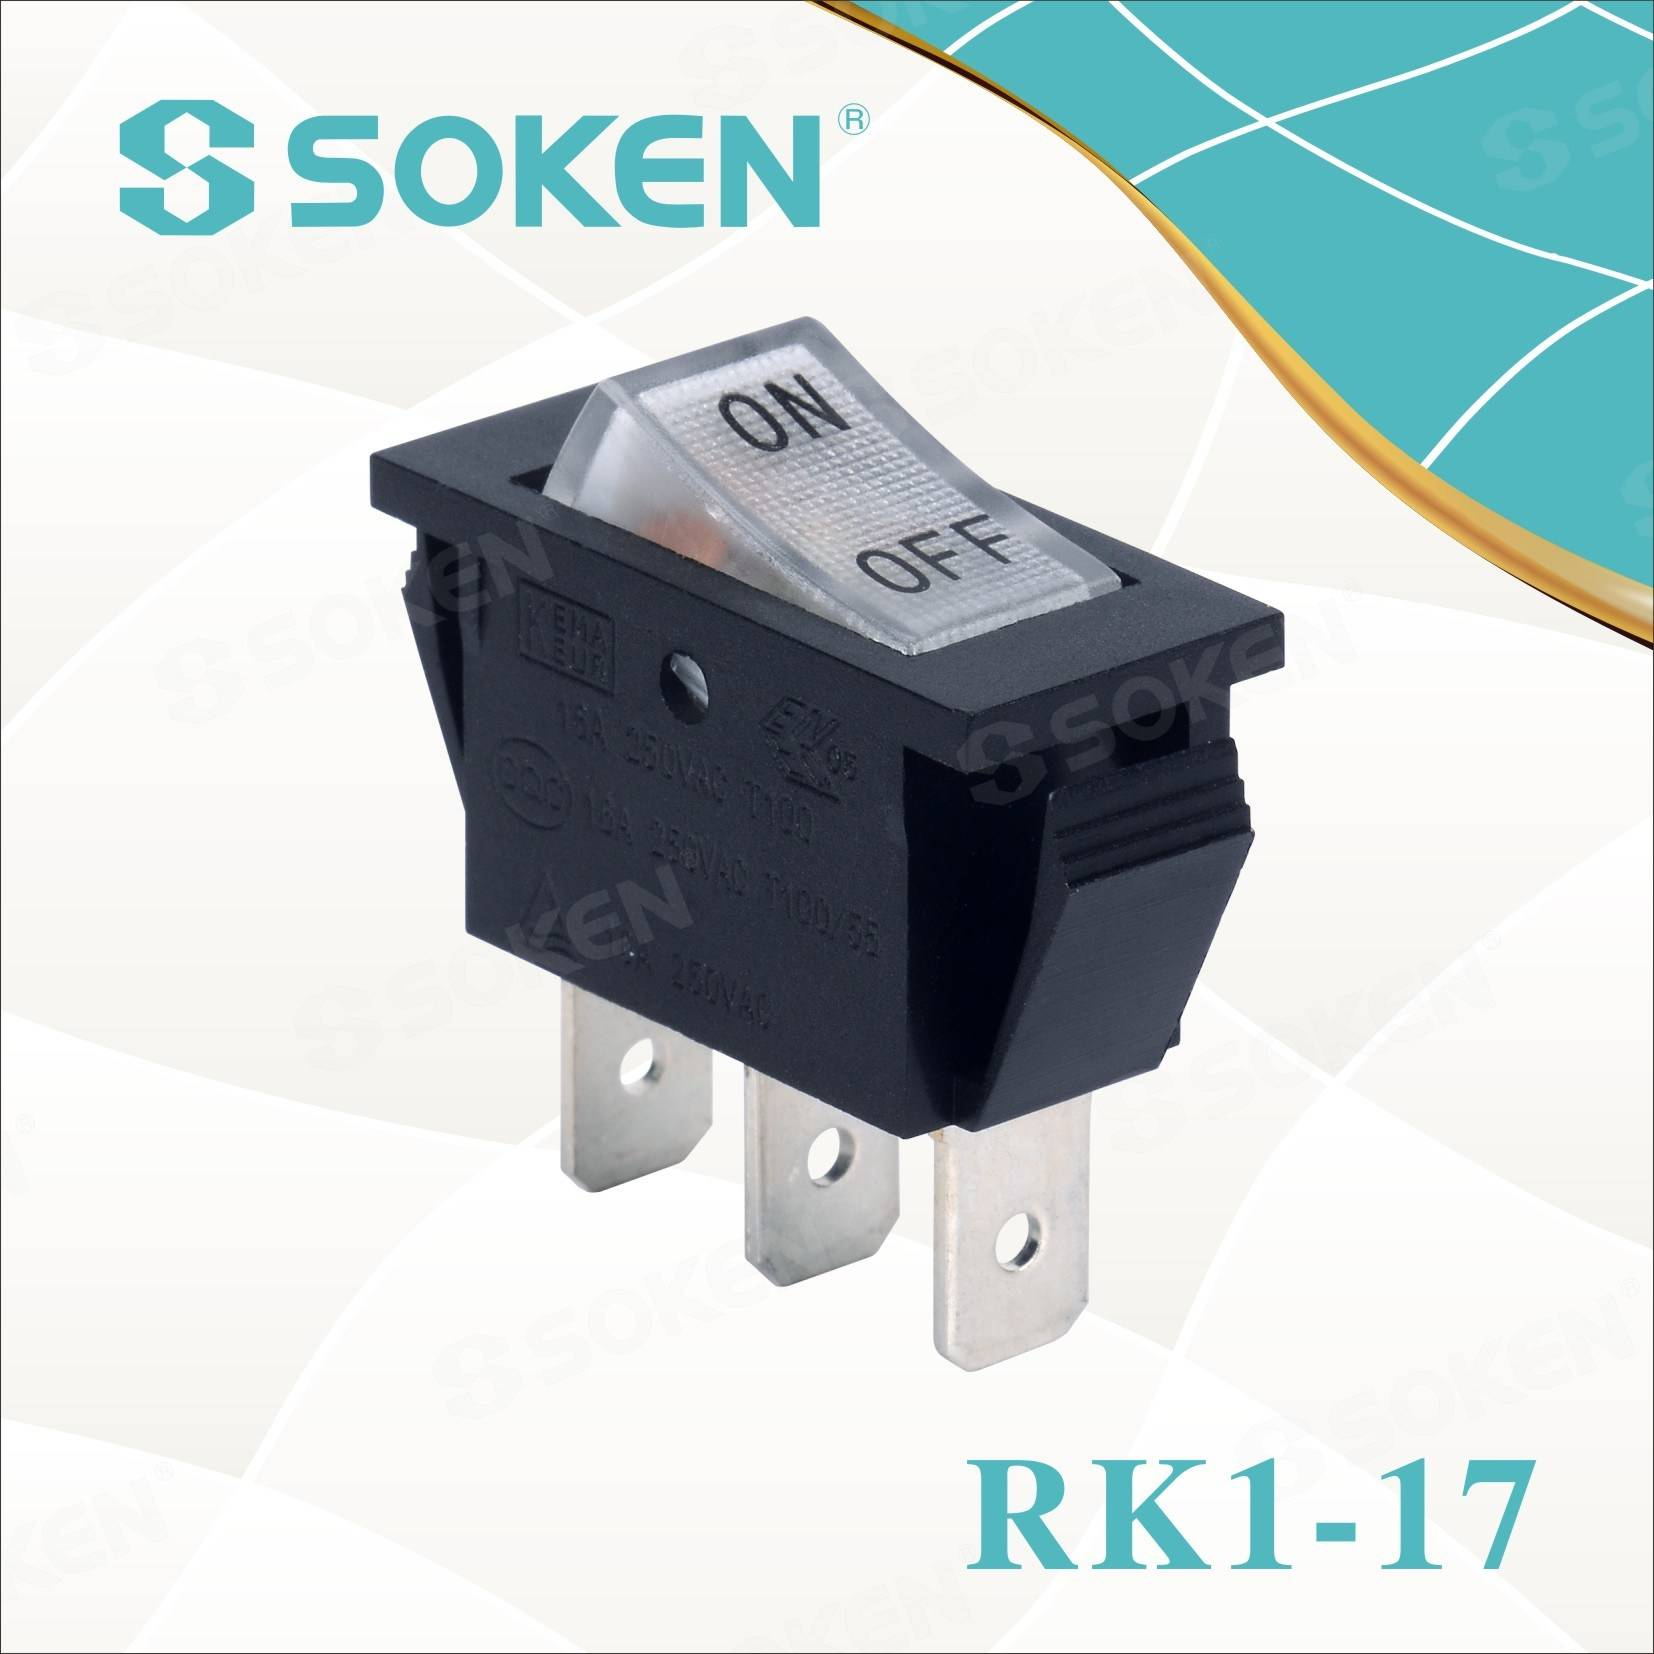 Quots for Waterproof Led Rocker Switch -